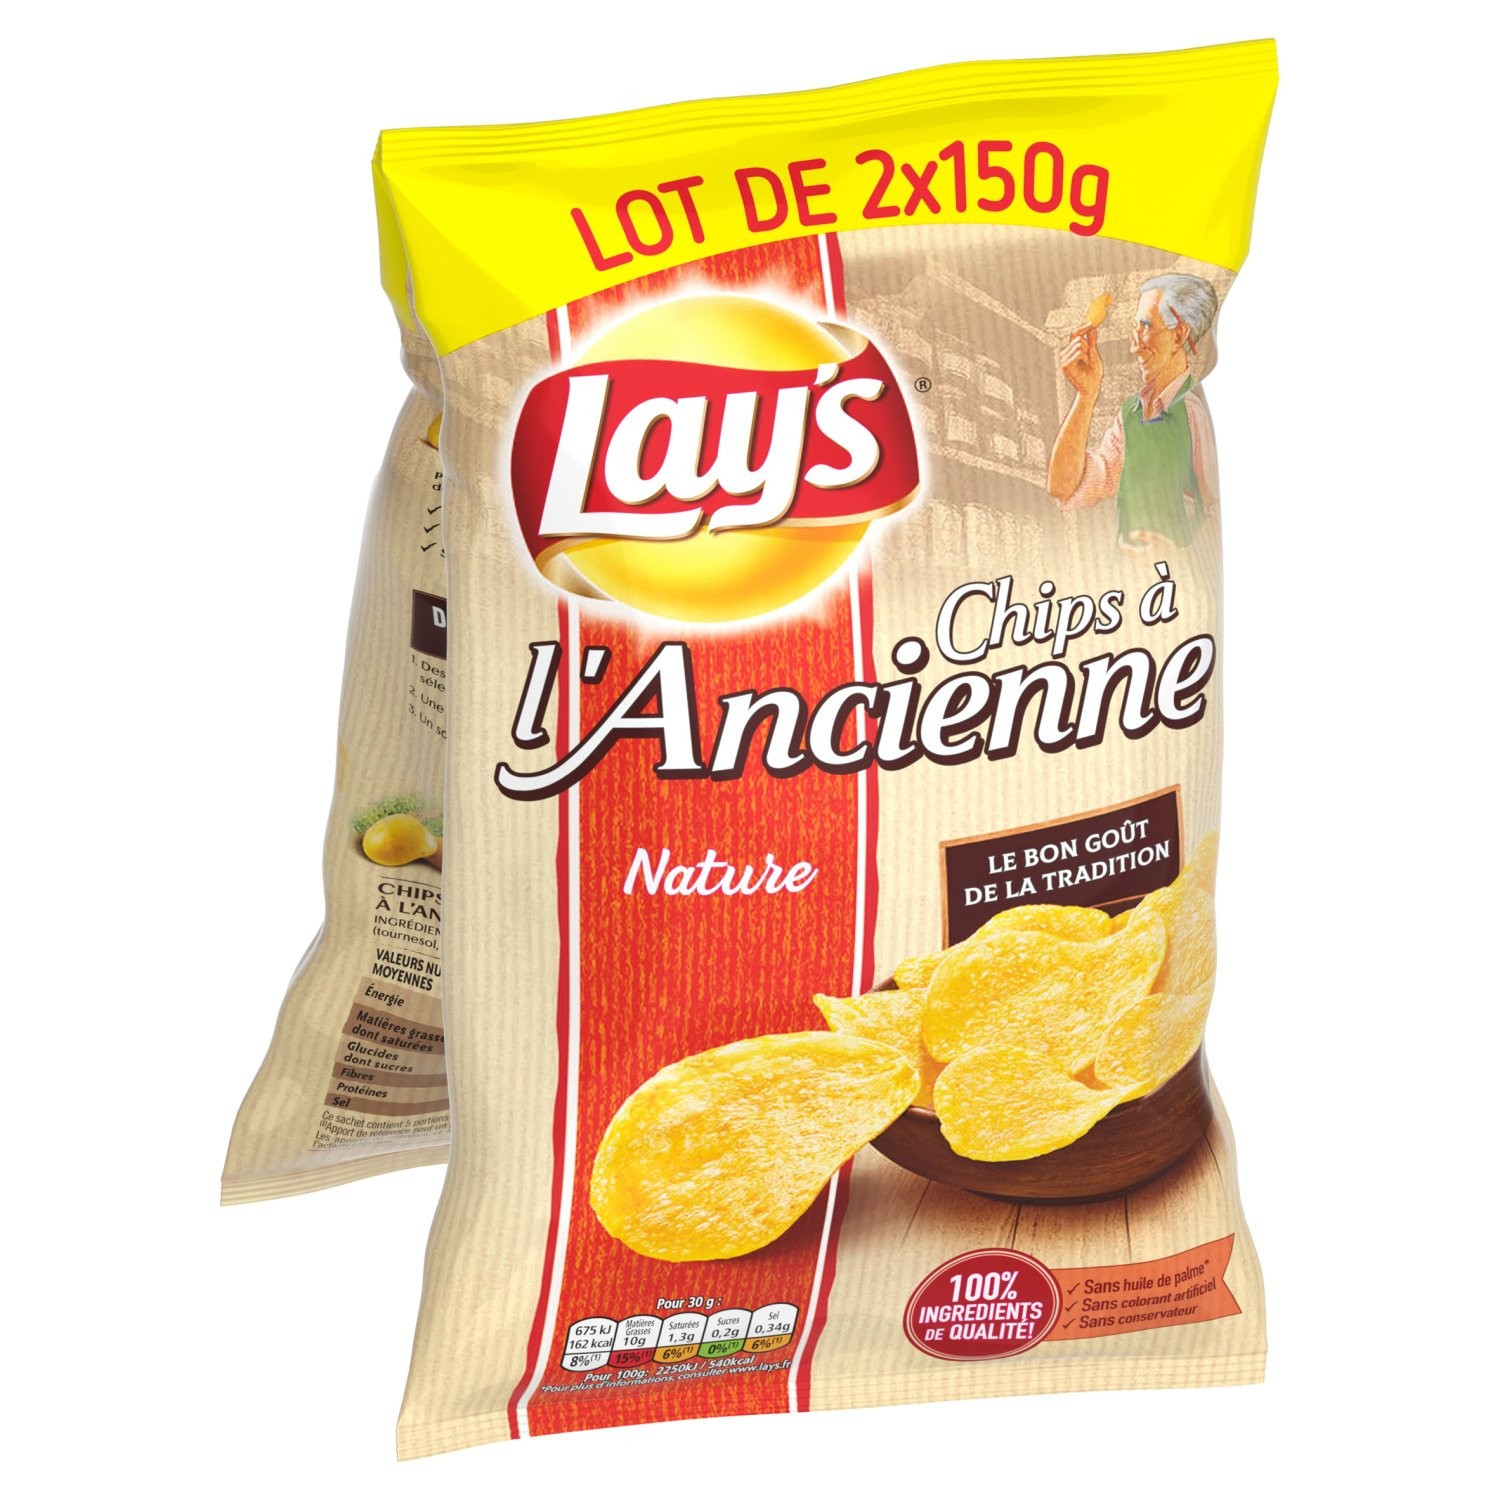 Chips à l'ancienne, Lay's LOT DE 2 (2 x 150 g)